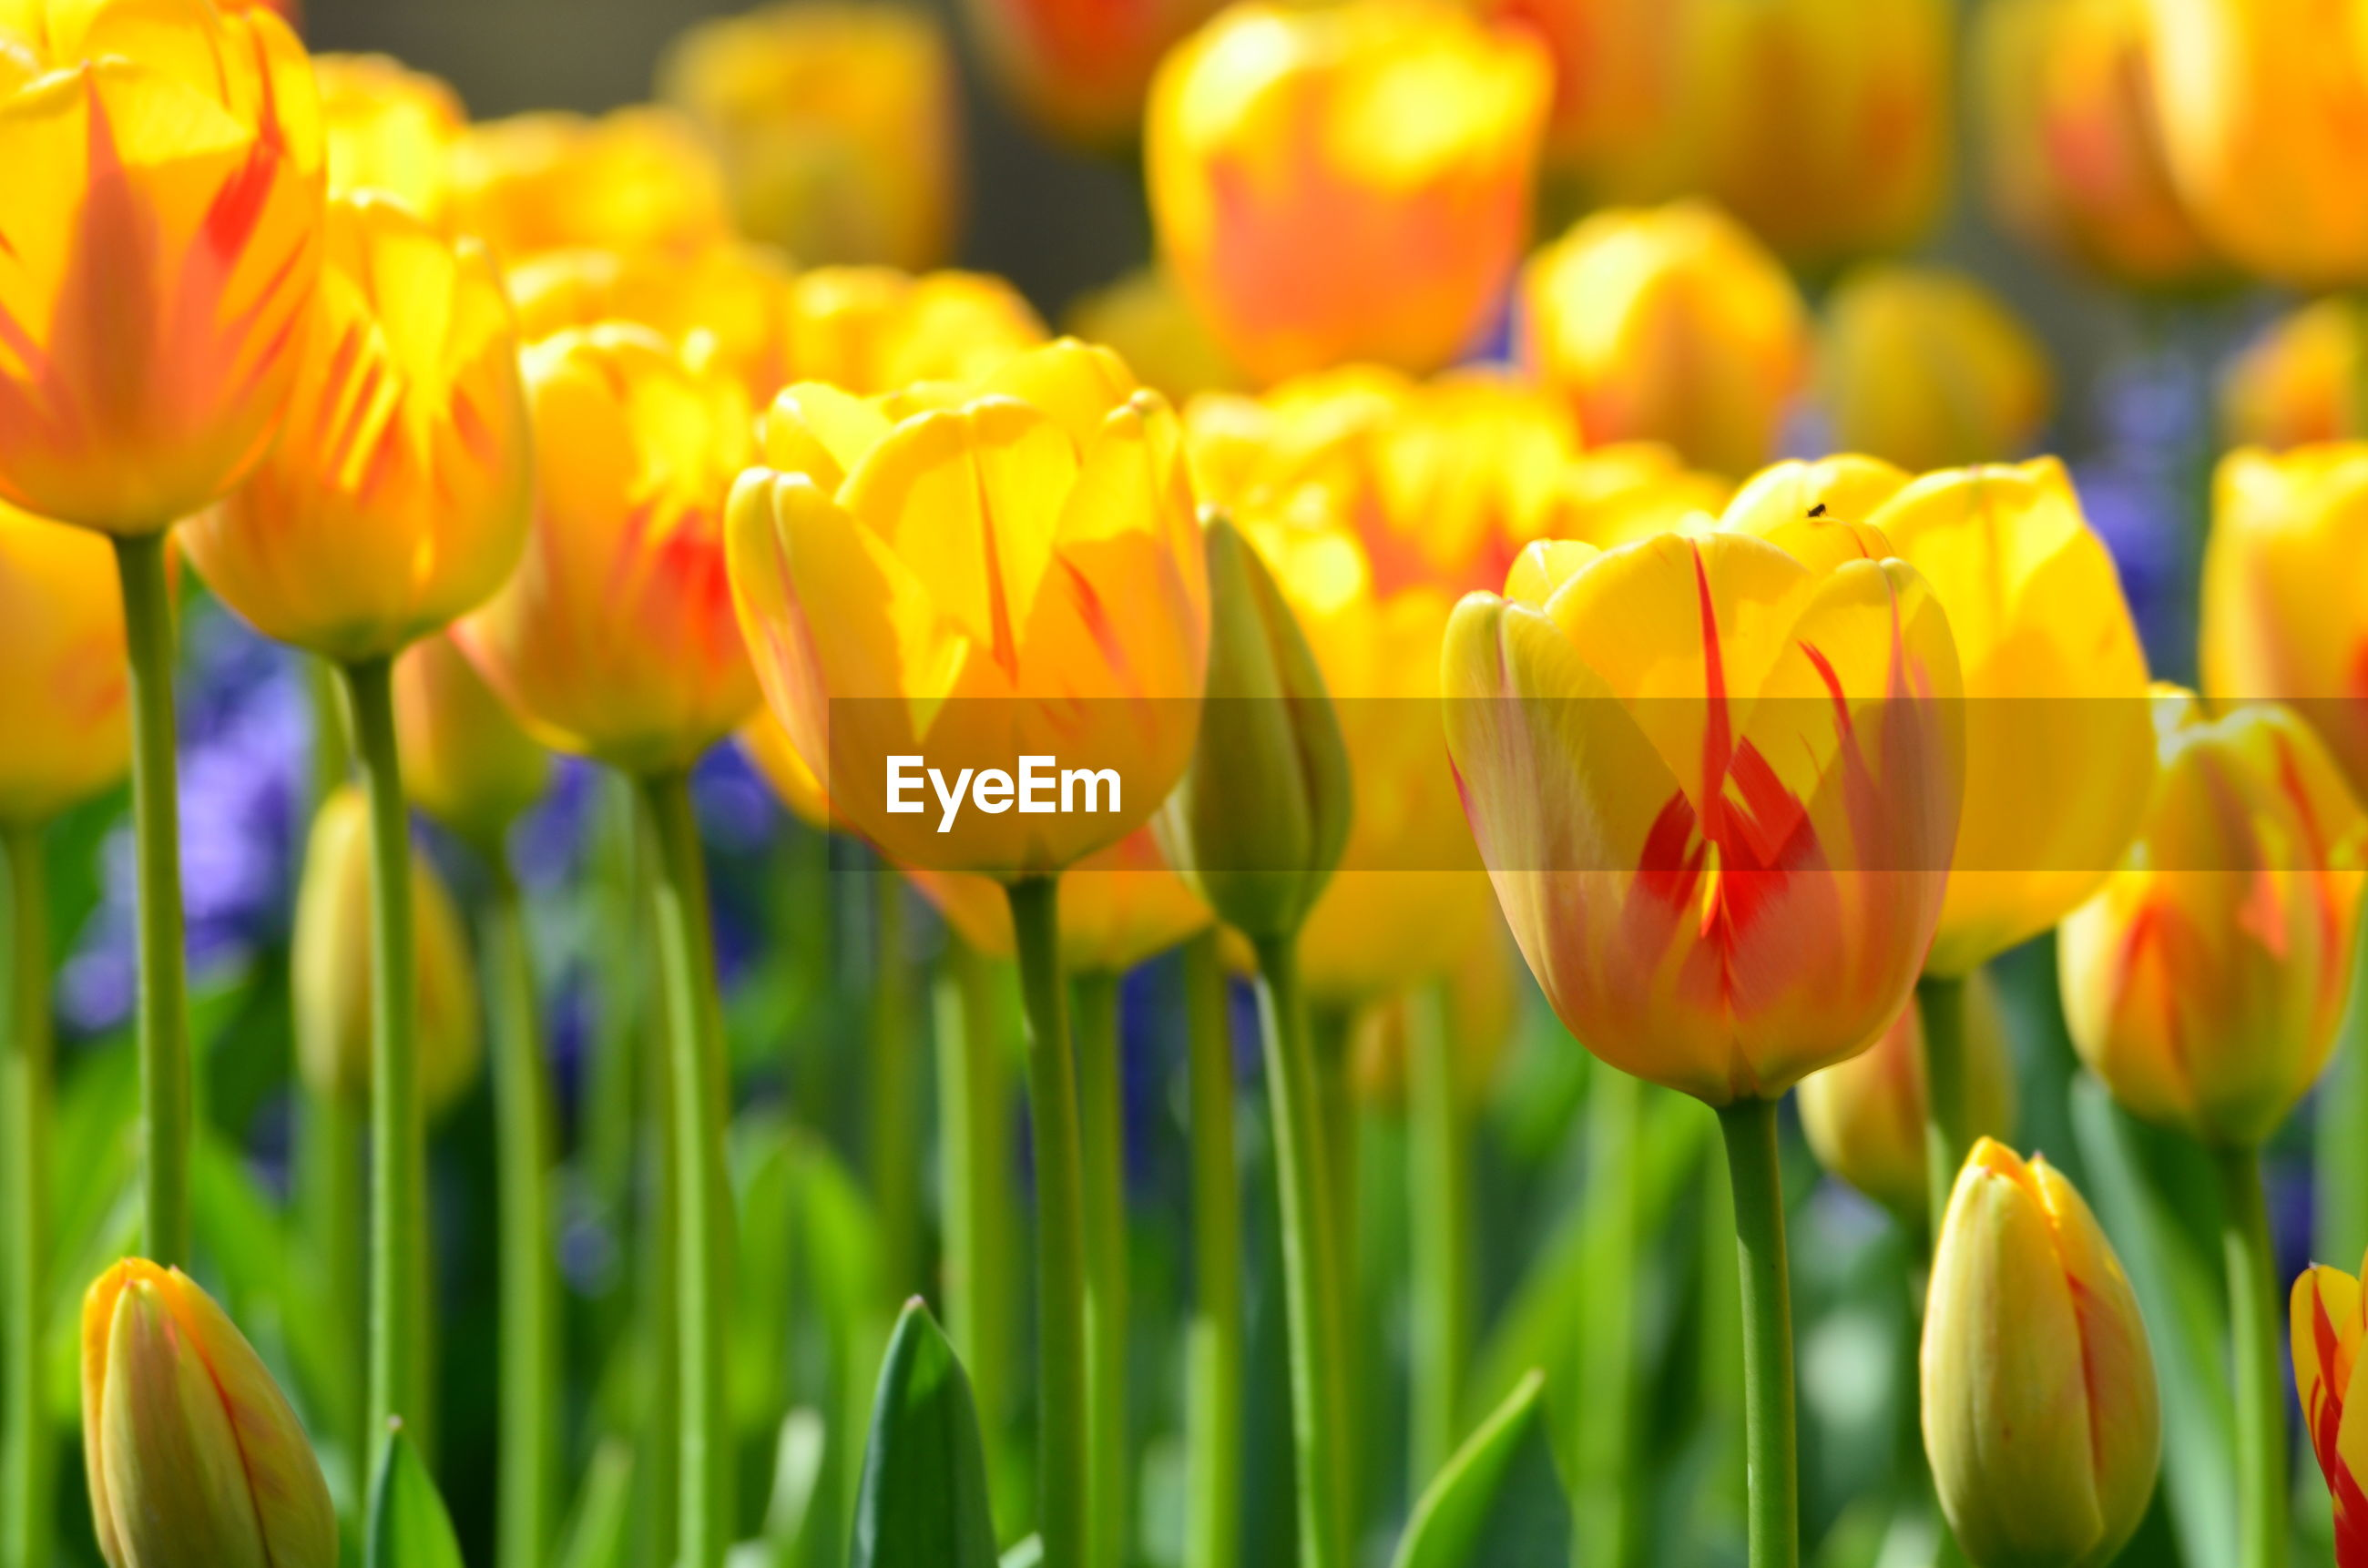 CLOSE-UP OF YELLOW TULIP FLOWERS IN FIELD